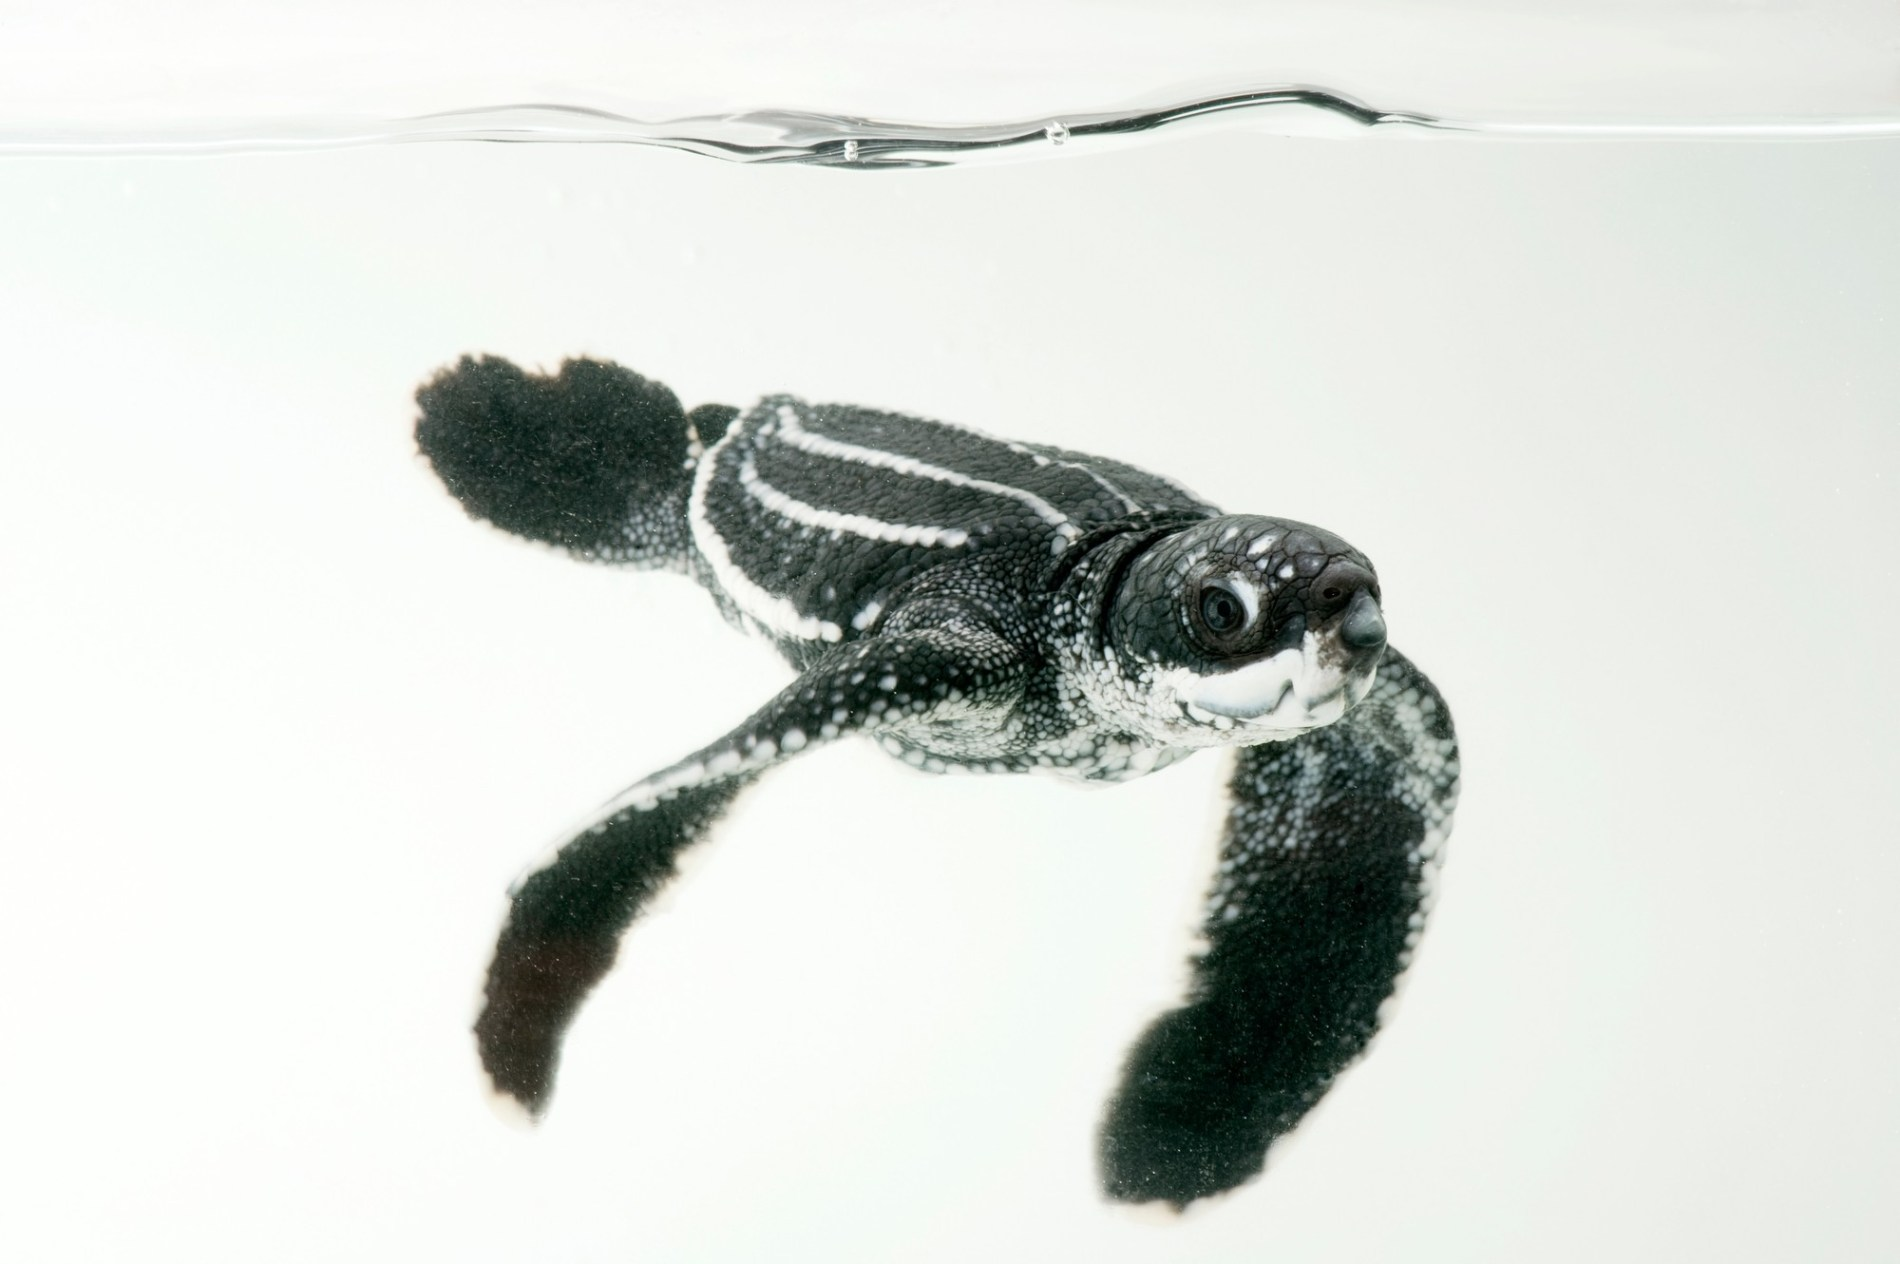 Photo: Studio portraits of a half-day-old hatchling leatherback turtle (Dermochelys coriacea) from the wild in Bioko.